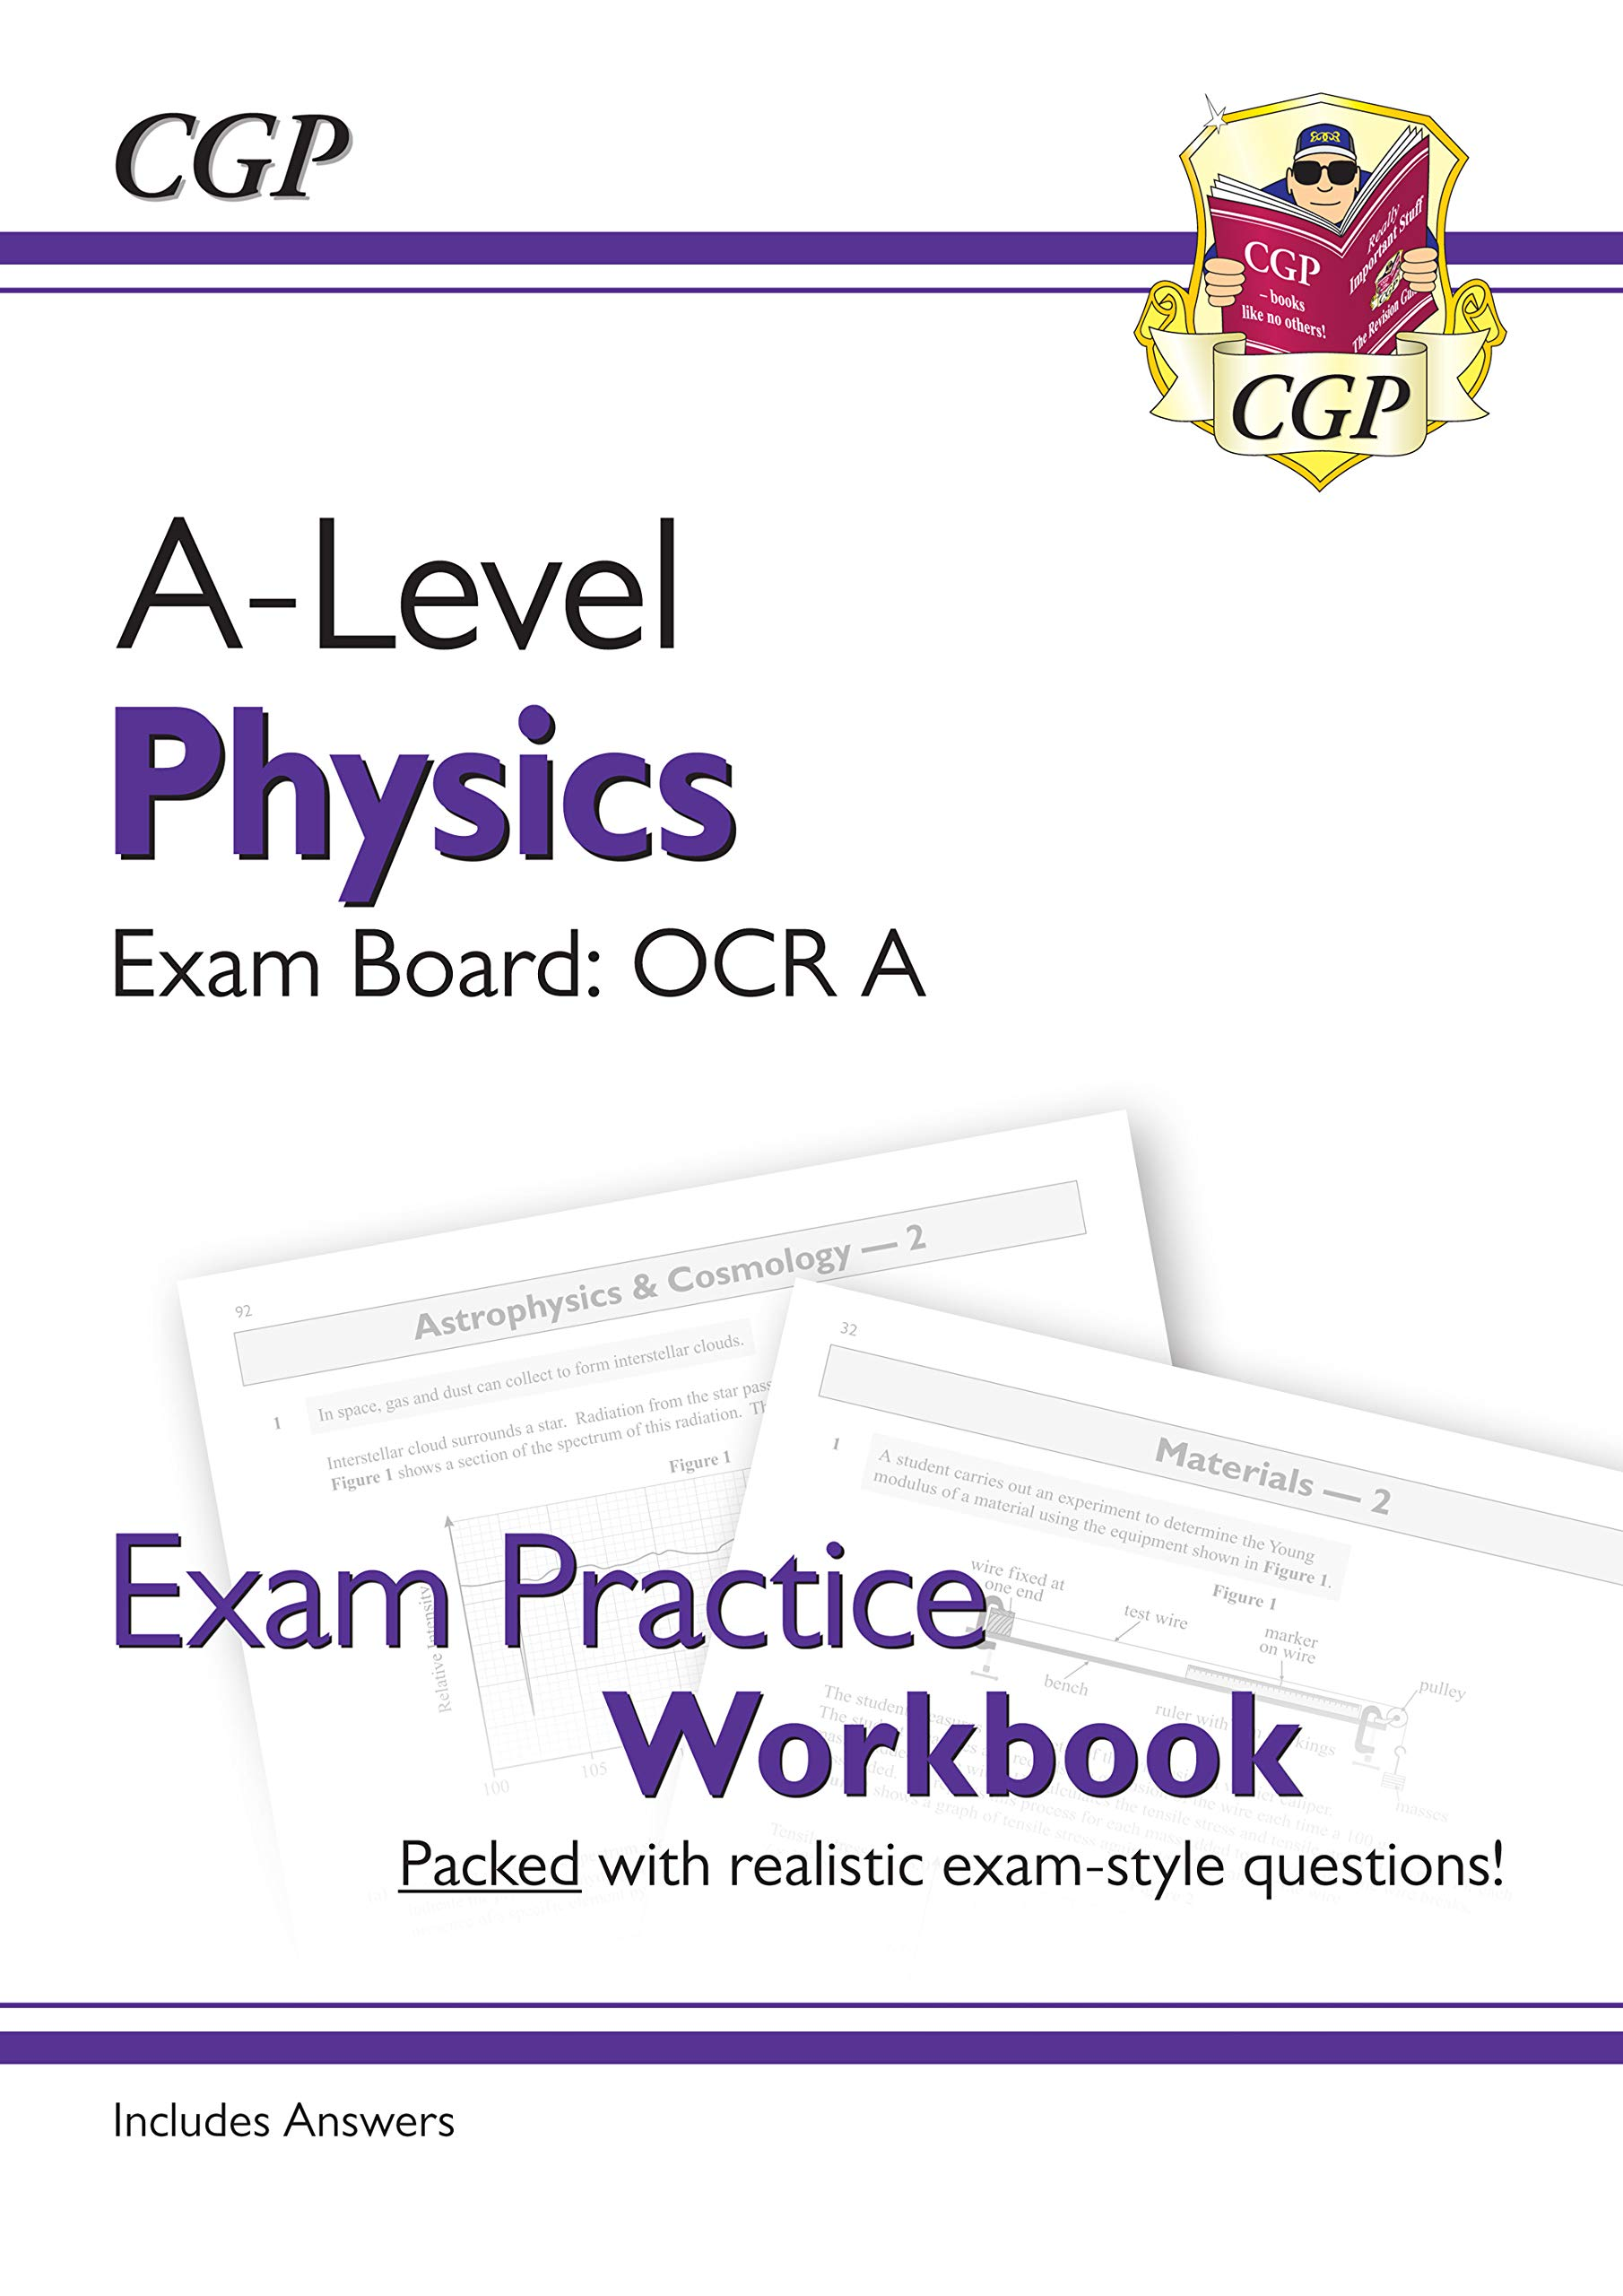 New A-Level Physics for 2018: OCR A Year 1 & 2 Exam Practice